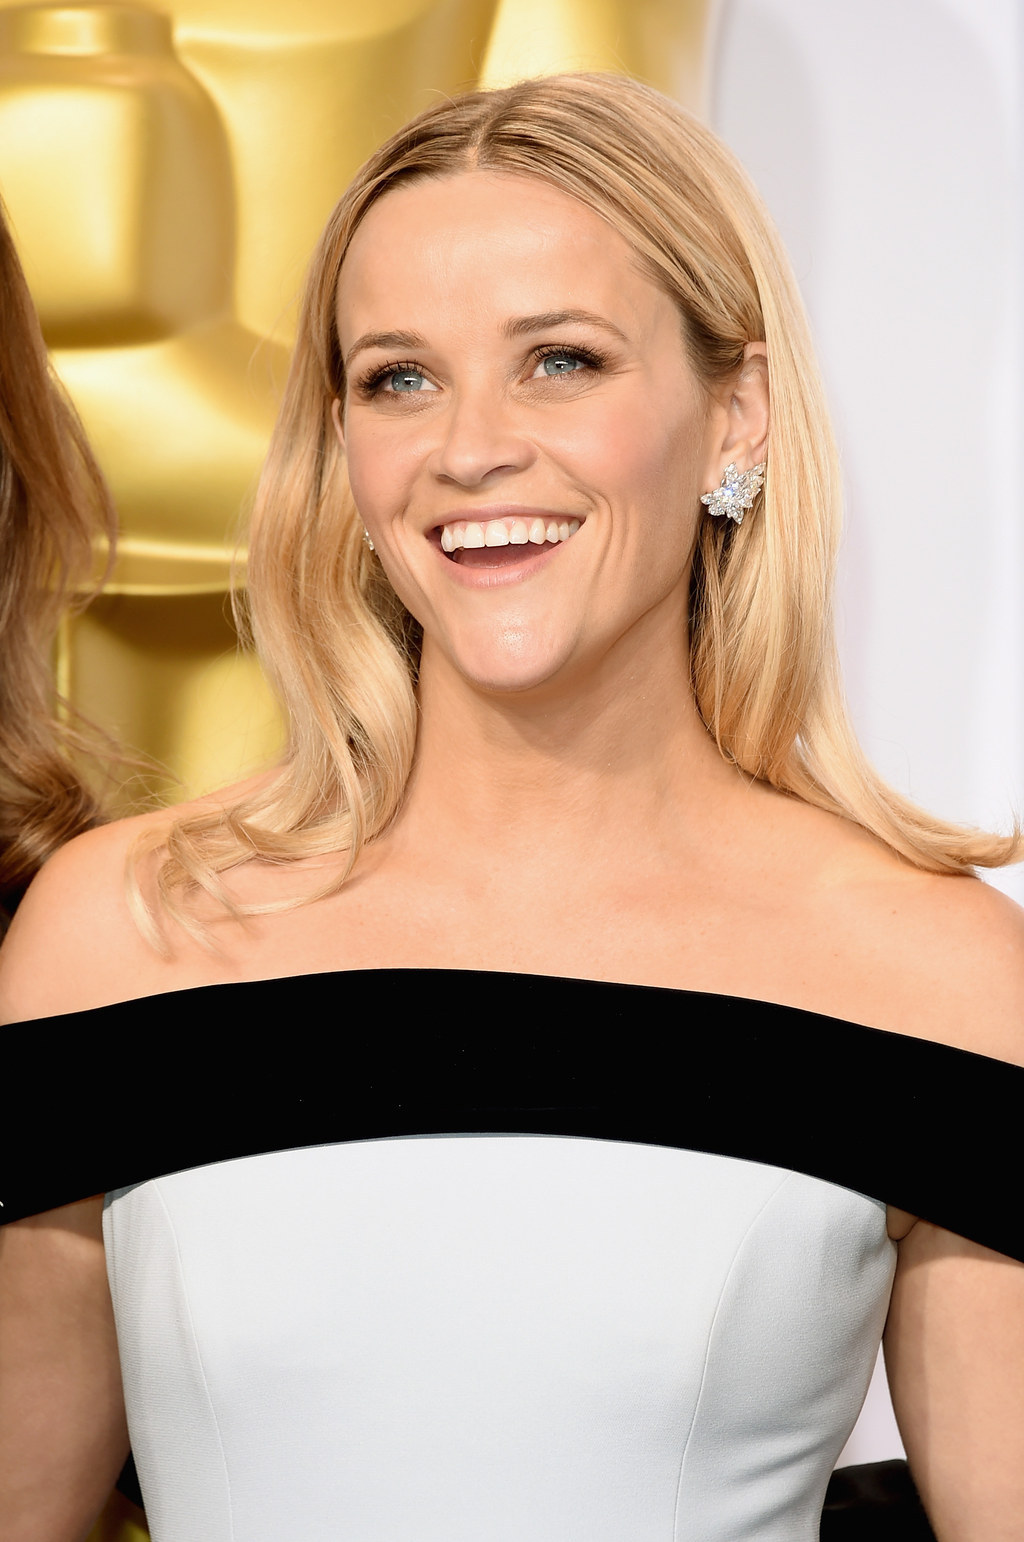 Here Are The Beauty Products The Stars Used To Get Their Flawless Oscar Looks